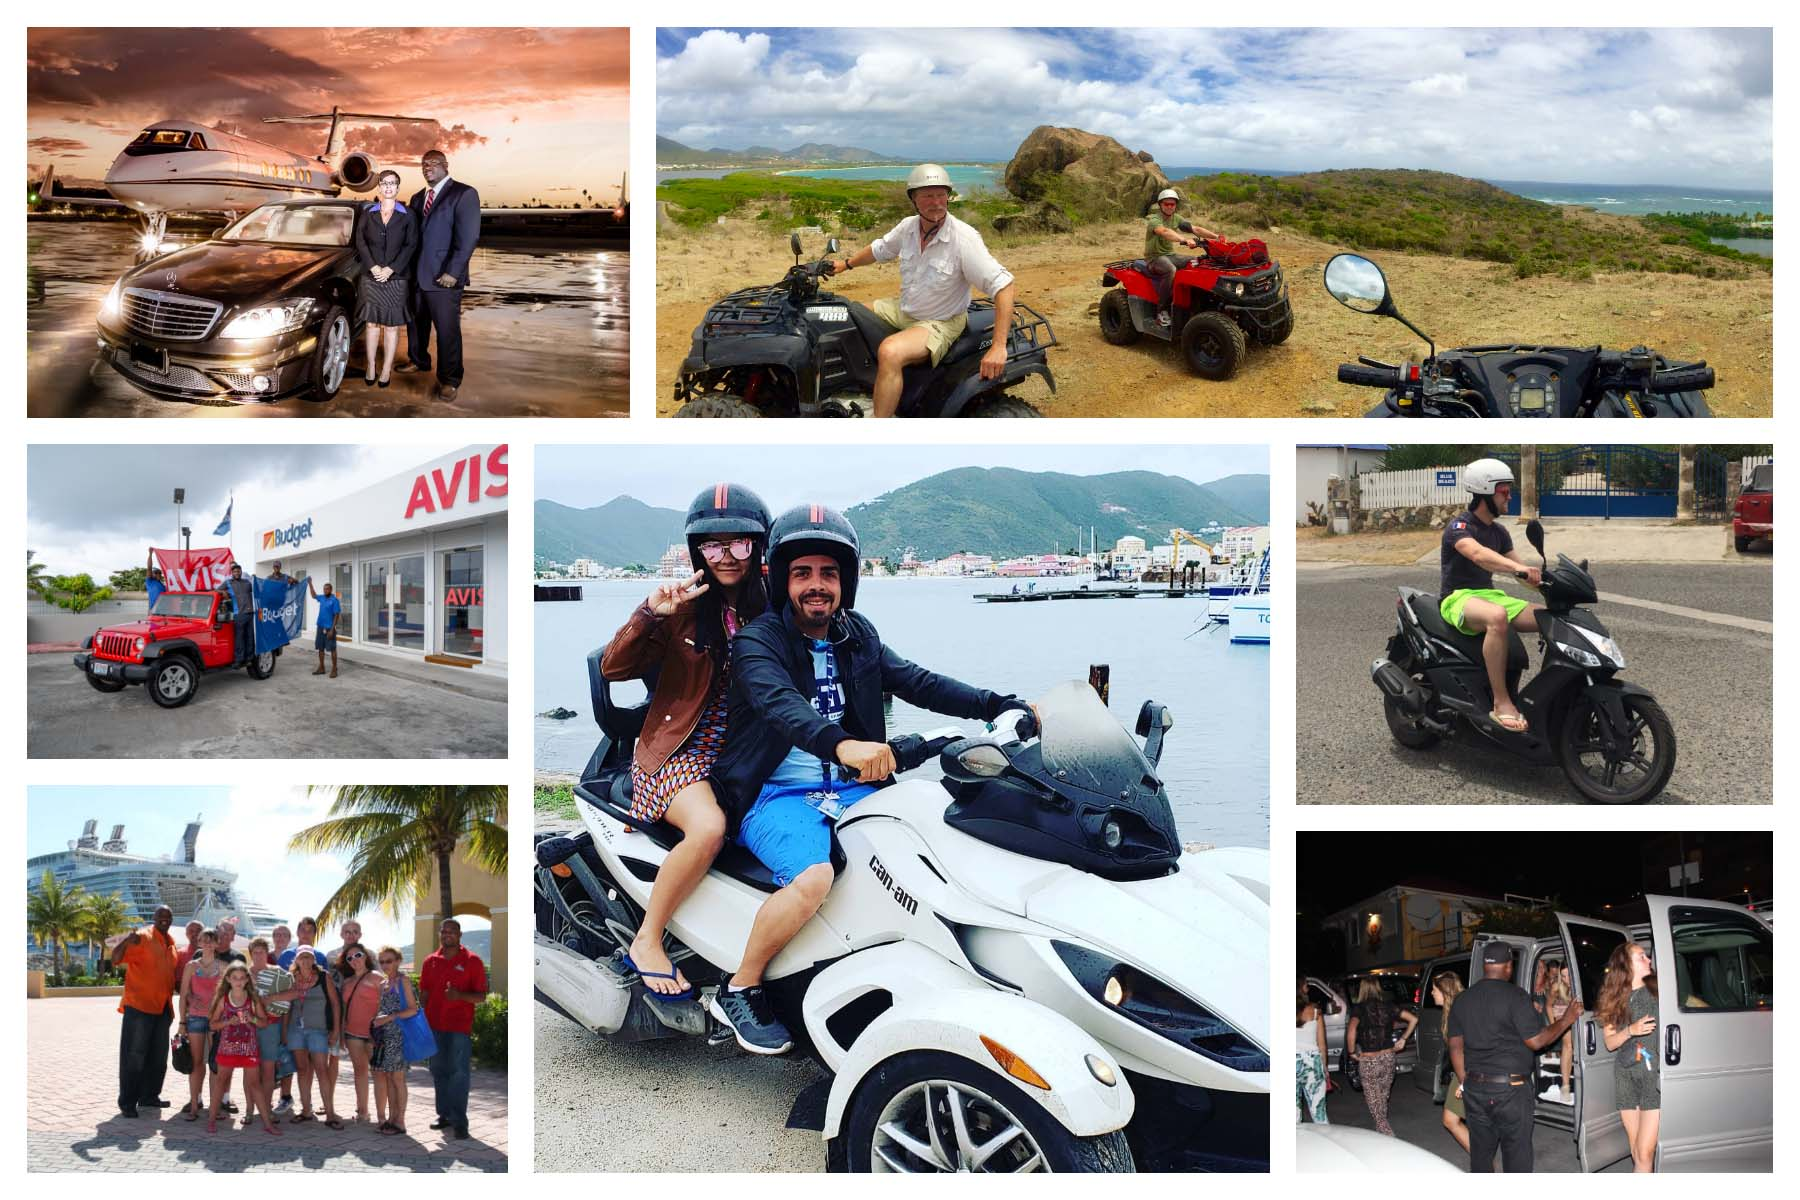 Best Transportation on Sint Maarten - Saint Martin 2019/2020: Taxi, Bus, Limousine, Spyder, Trike, Harley, ATV, Car Rental, Scooter, Private Chauffeur, Events, Island Tours.